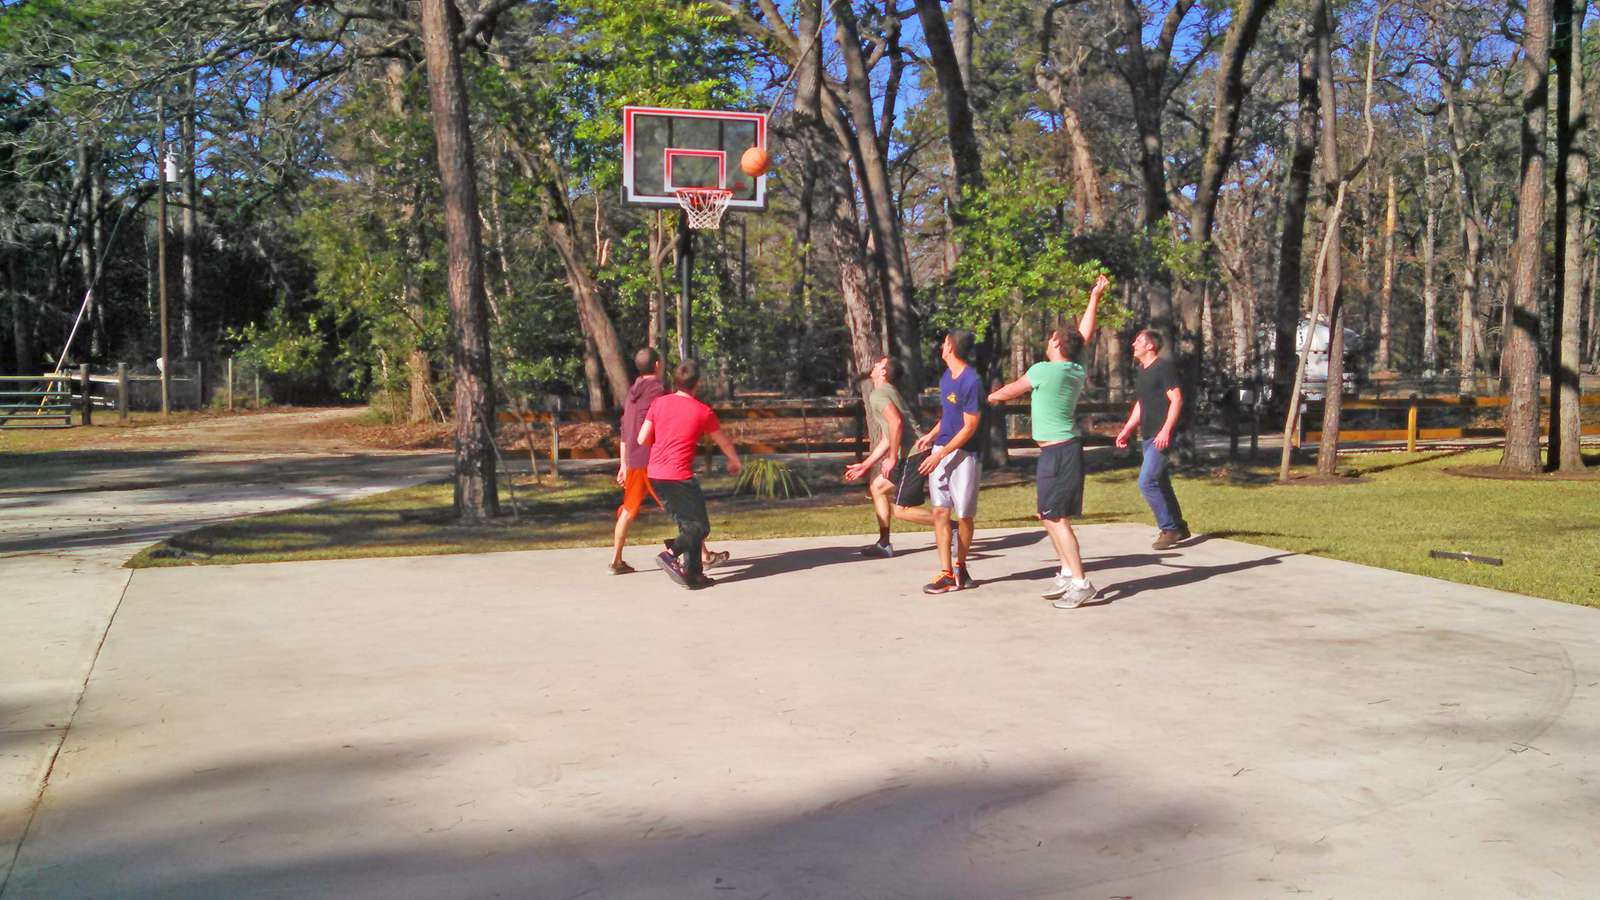 Our full basketball court is a short walk from Henry's